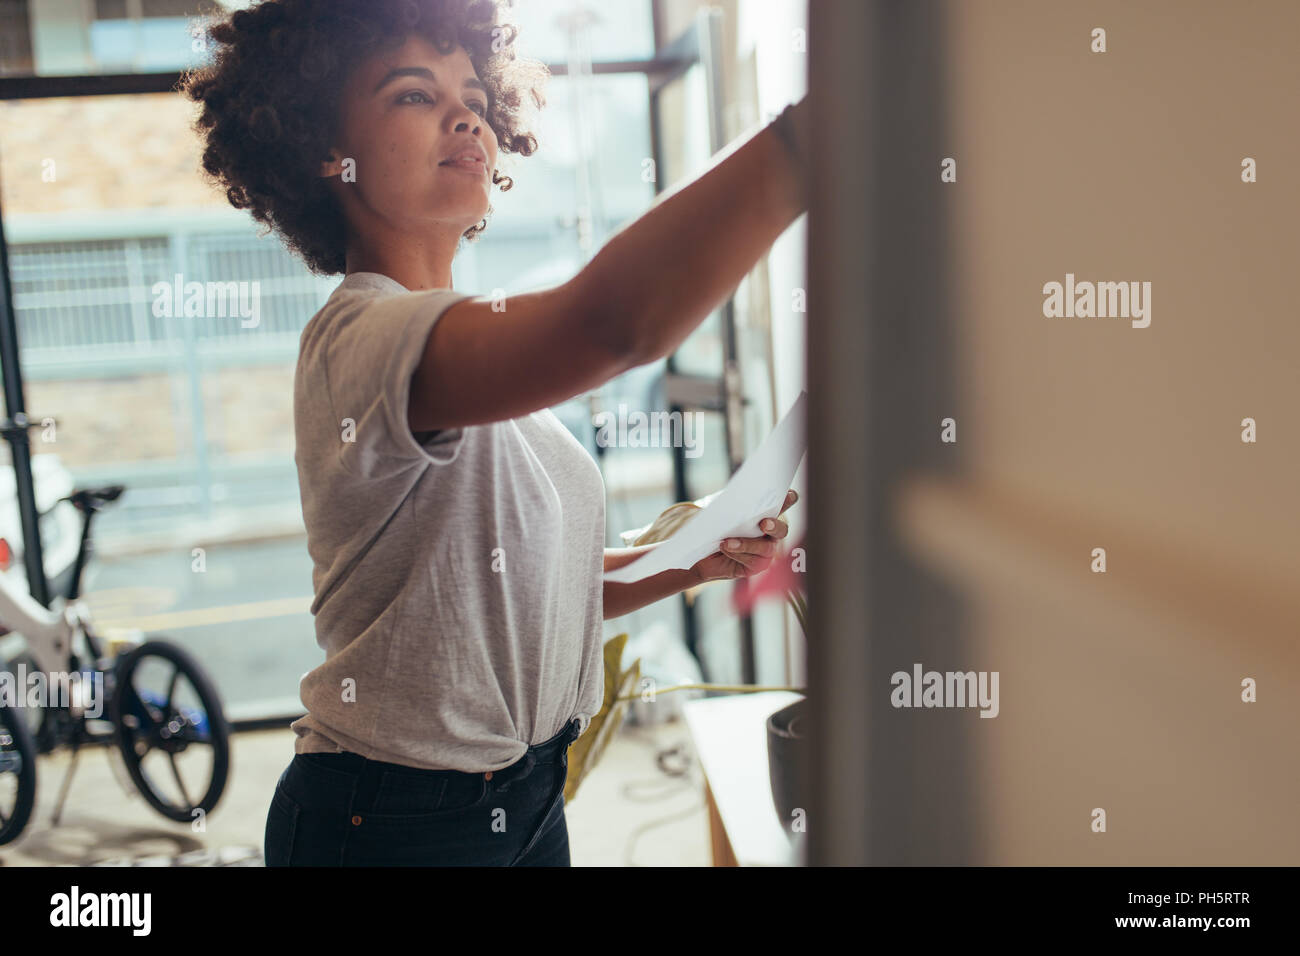 Businesswoman writing on whiteboard at meeting. Young african female working at tech startup writing new project plan on board. - Stock Image